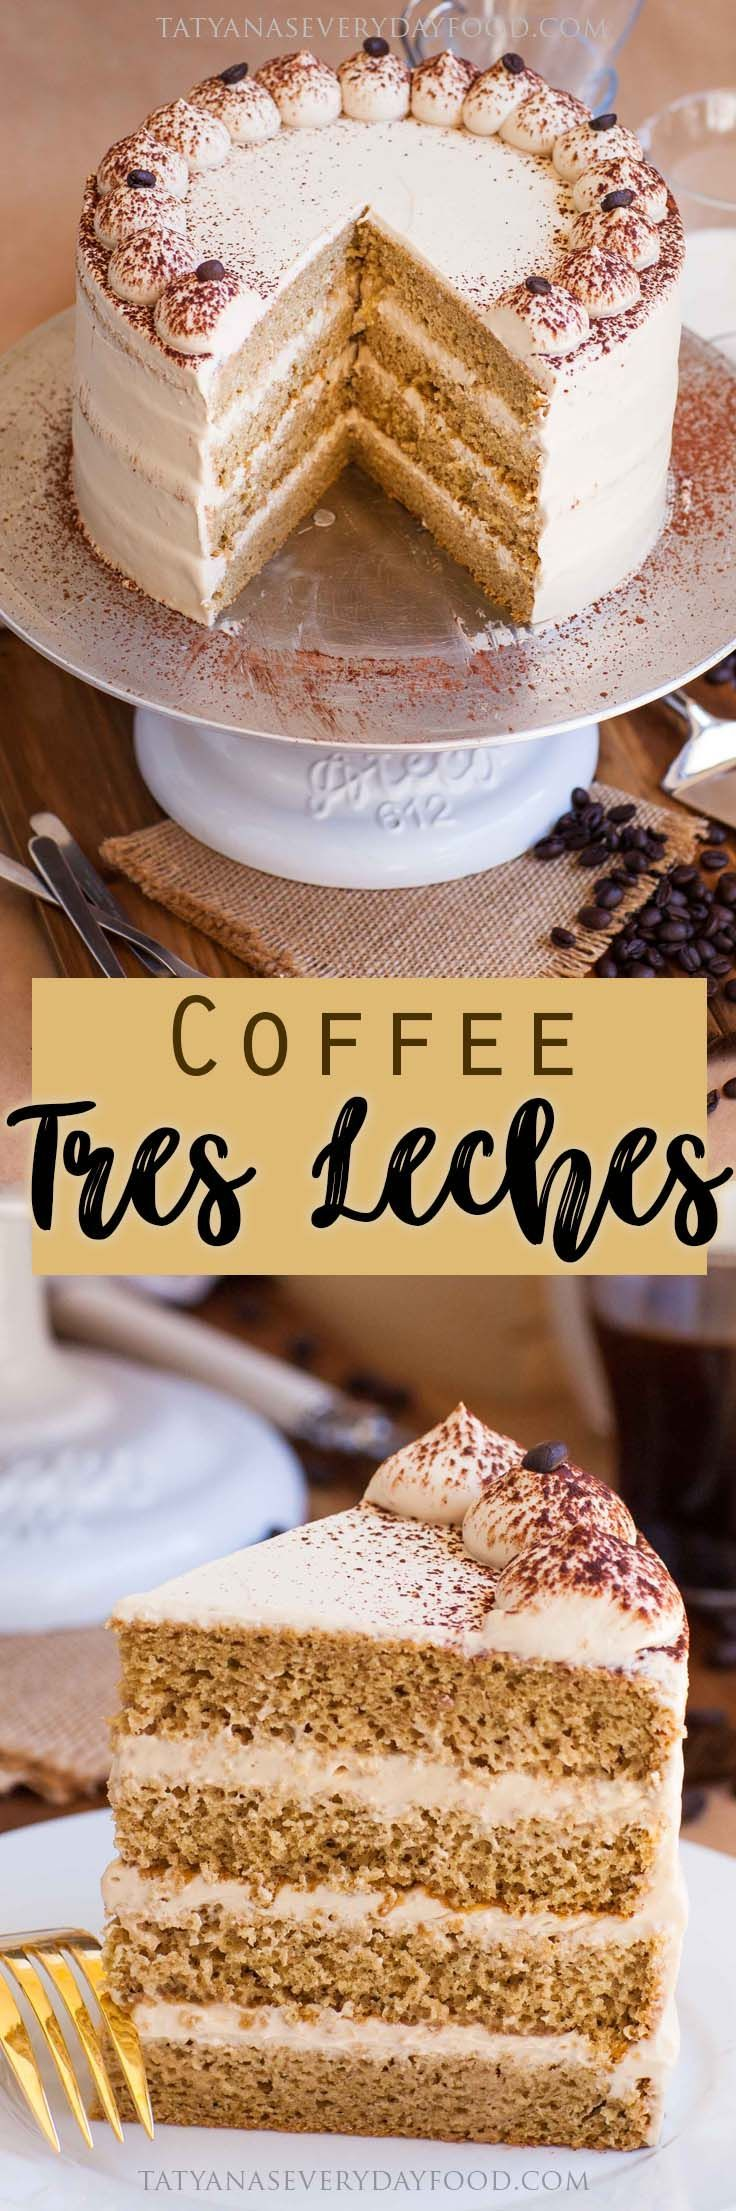 A coffee-flavored take on the famous Tres Leches Cake! This incredibly delicious coffee cake creation will steal your heart (and taste buds)! For this coffee tres leches cake, I start out with an airy and fluffy coffee sponge cake, soak the layers with a coffee flavored milk syrup and frost with a coffee whipped cream. […]